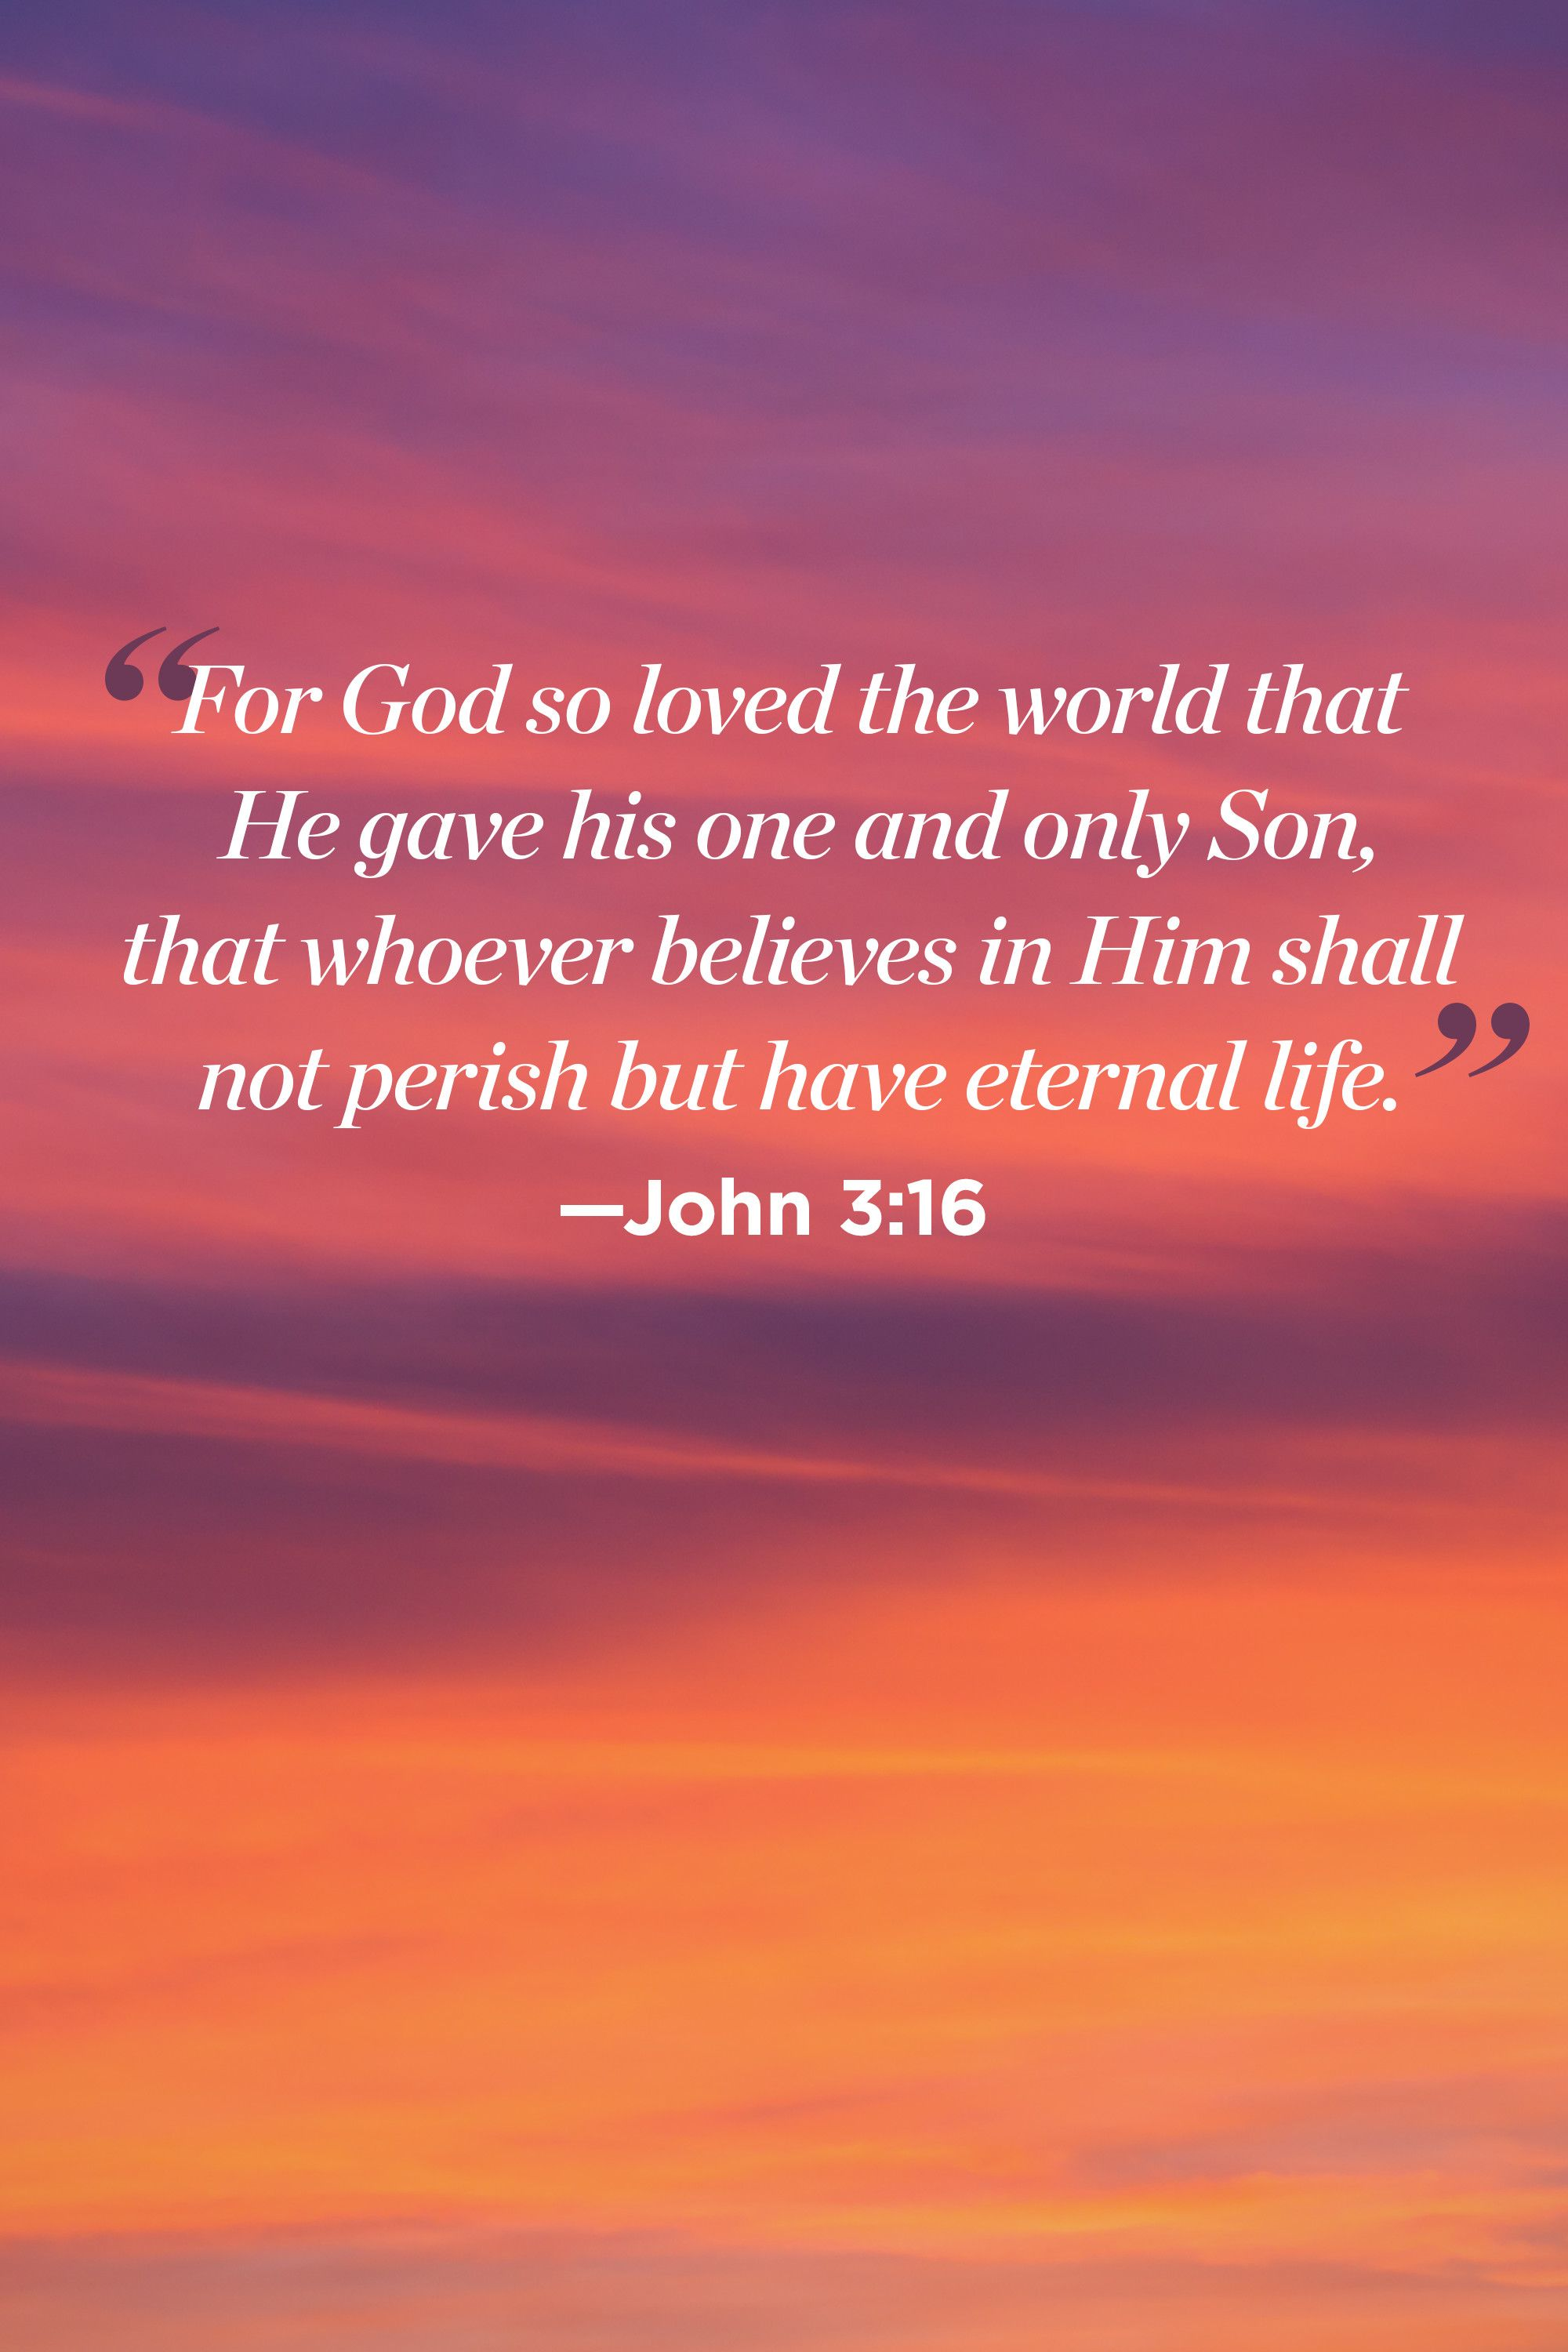 Inspirational Biblical Quotes About Life 26 Inspirational Bible Quotes That Will Change Your Perspective On